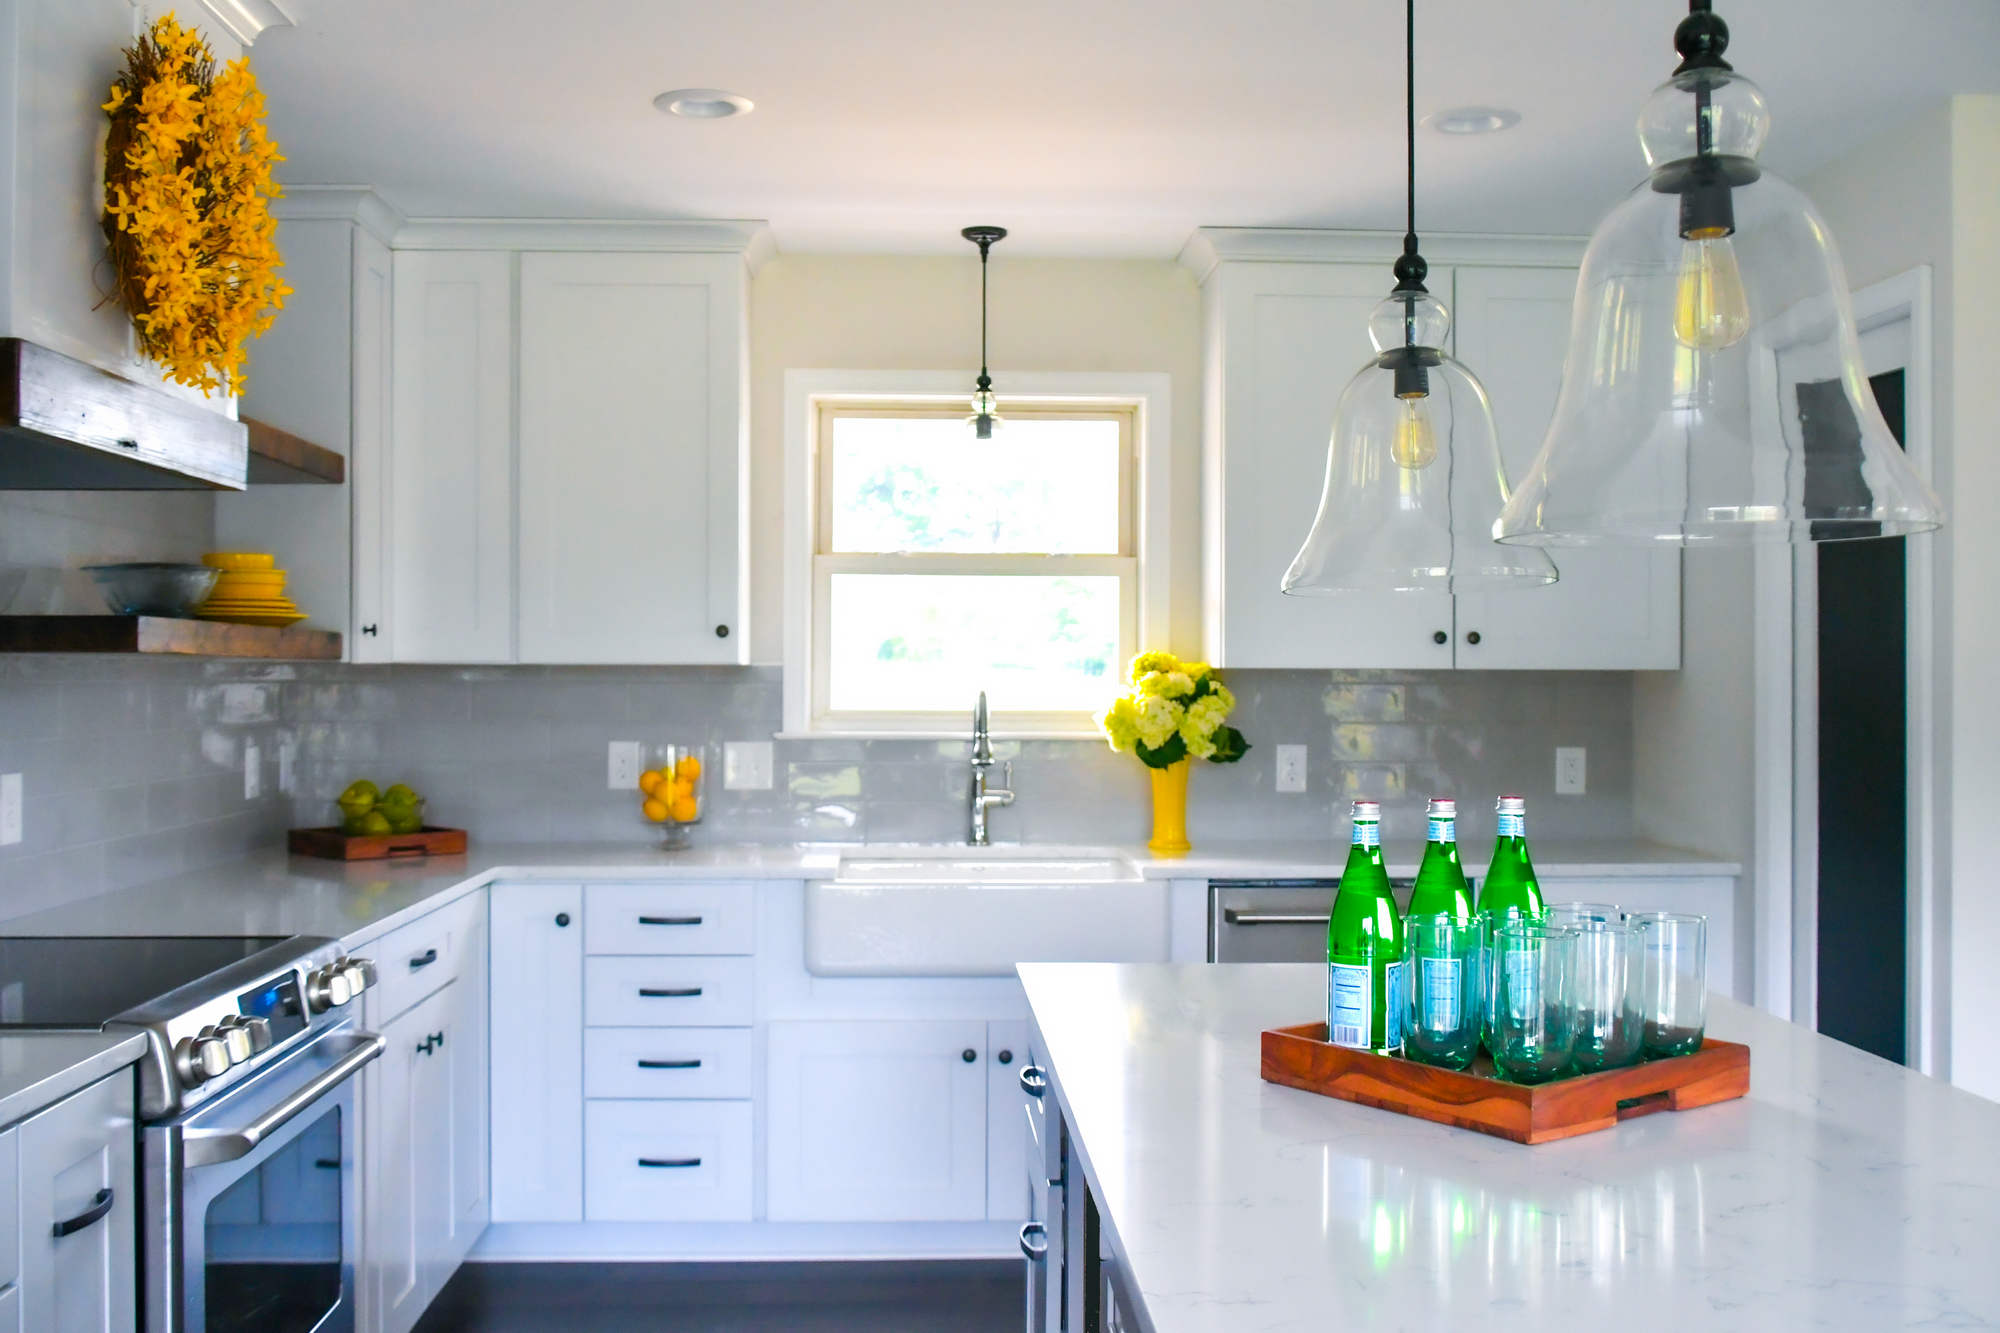 bright-white-kitchen-in-a-new-home-with-open-conce-AM396R2